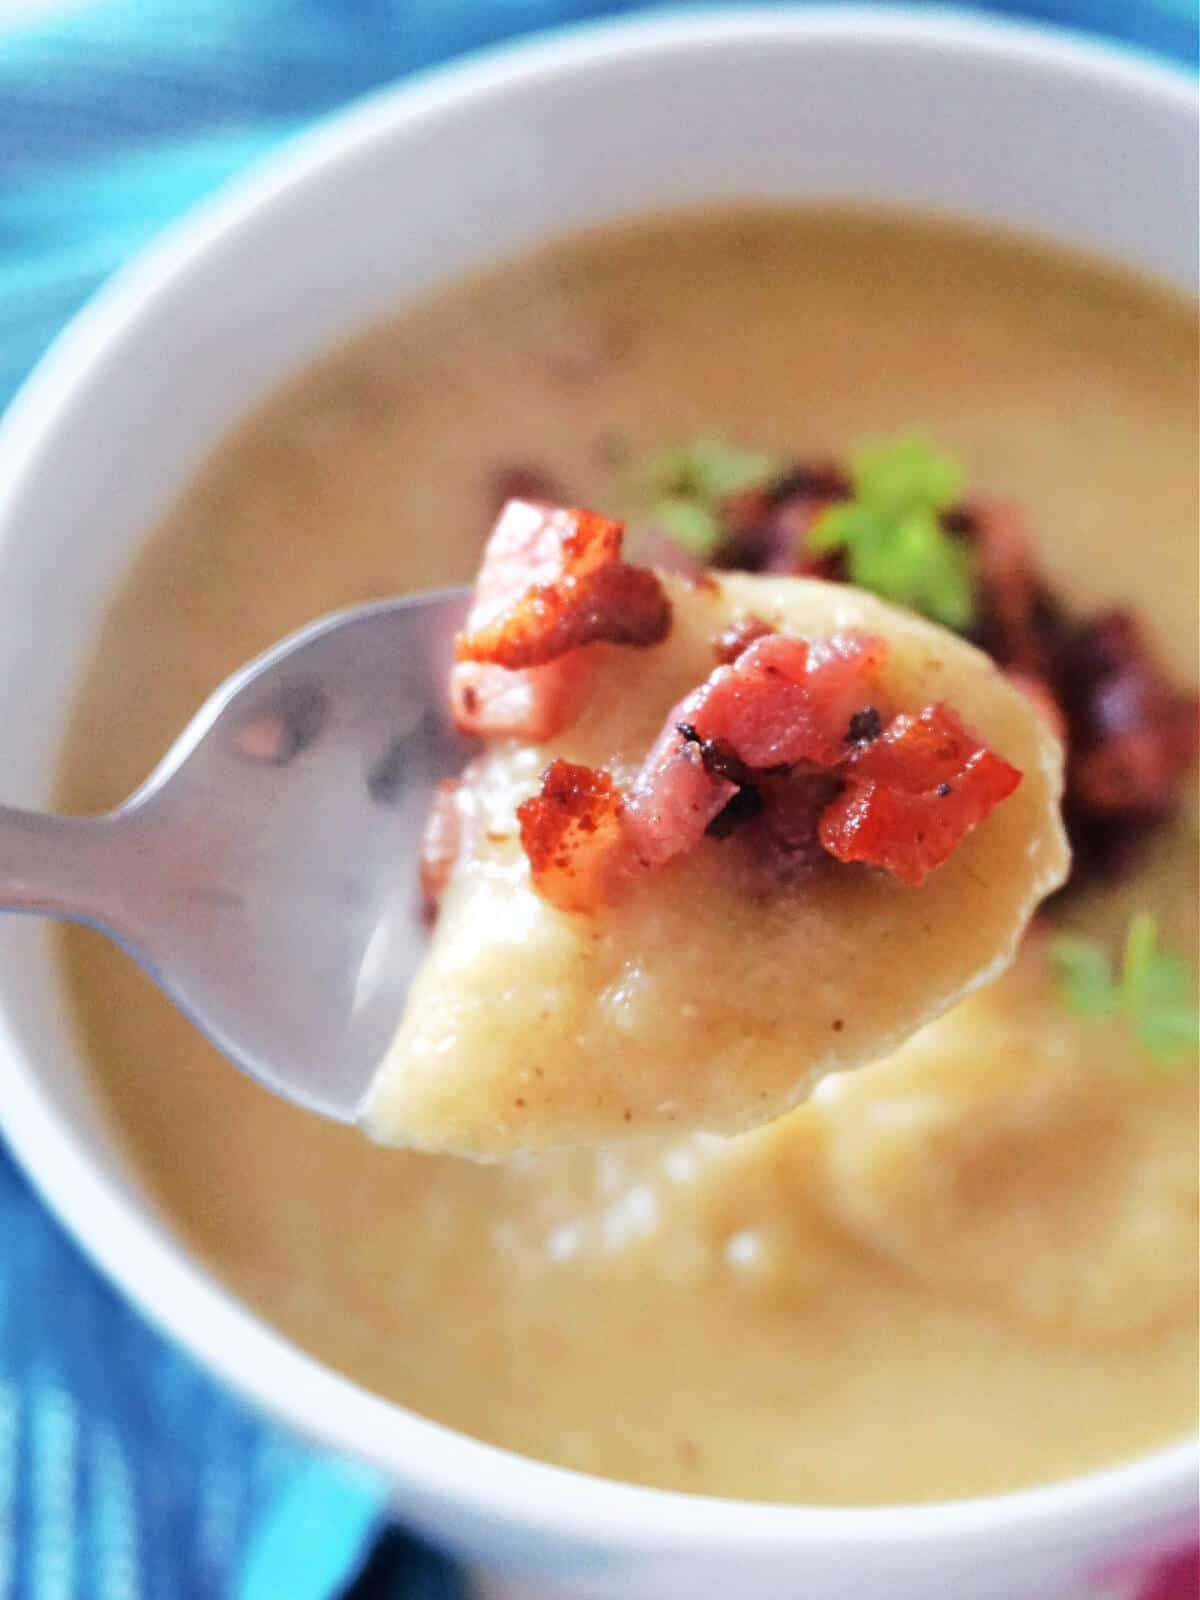 A spoonful of creamed leek and potato soup with bacon bits